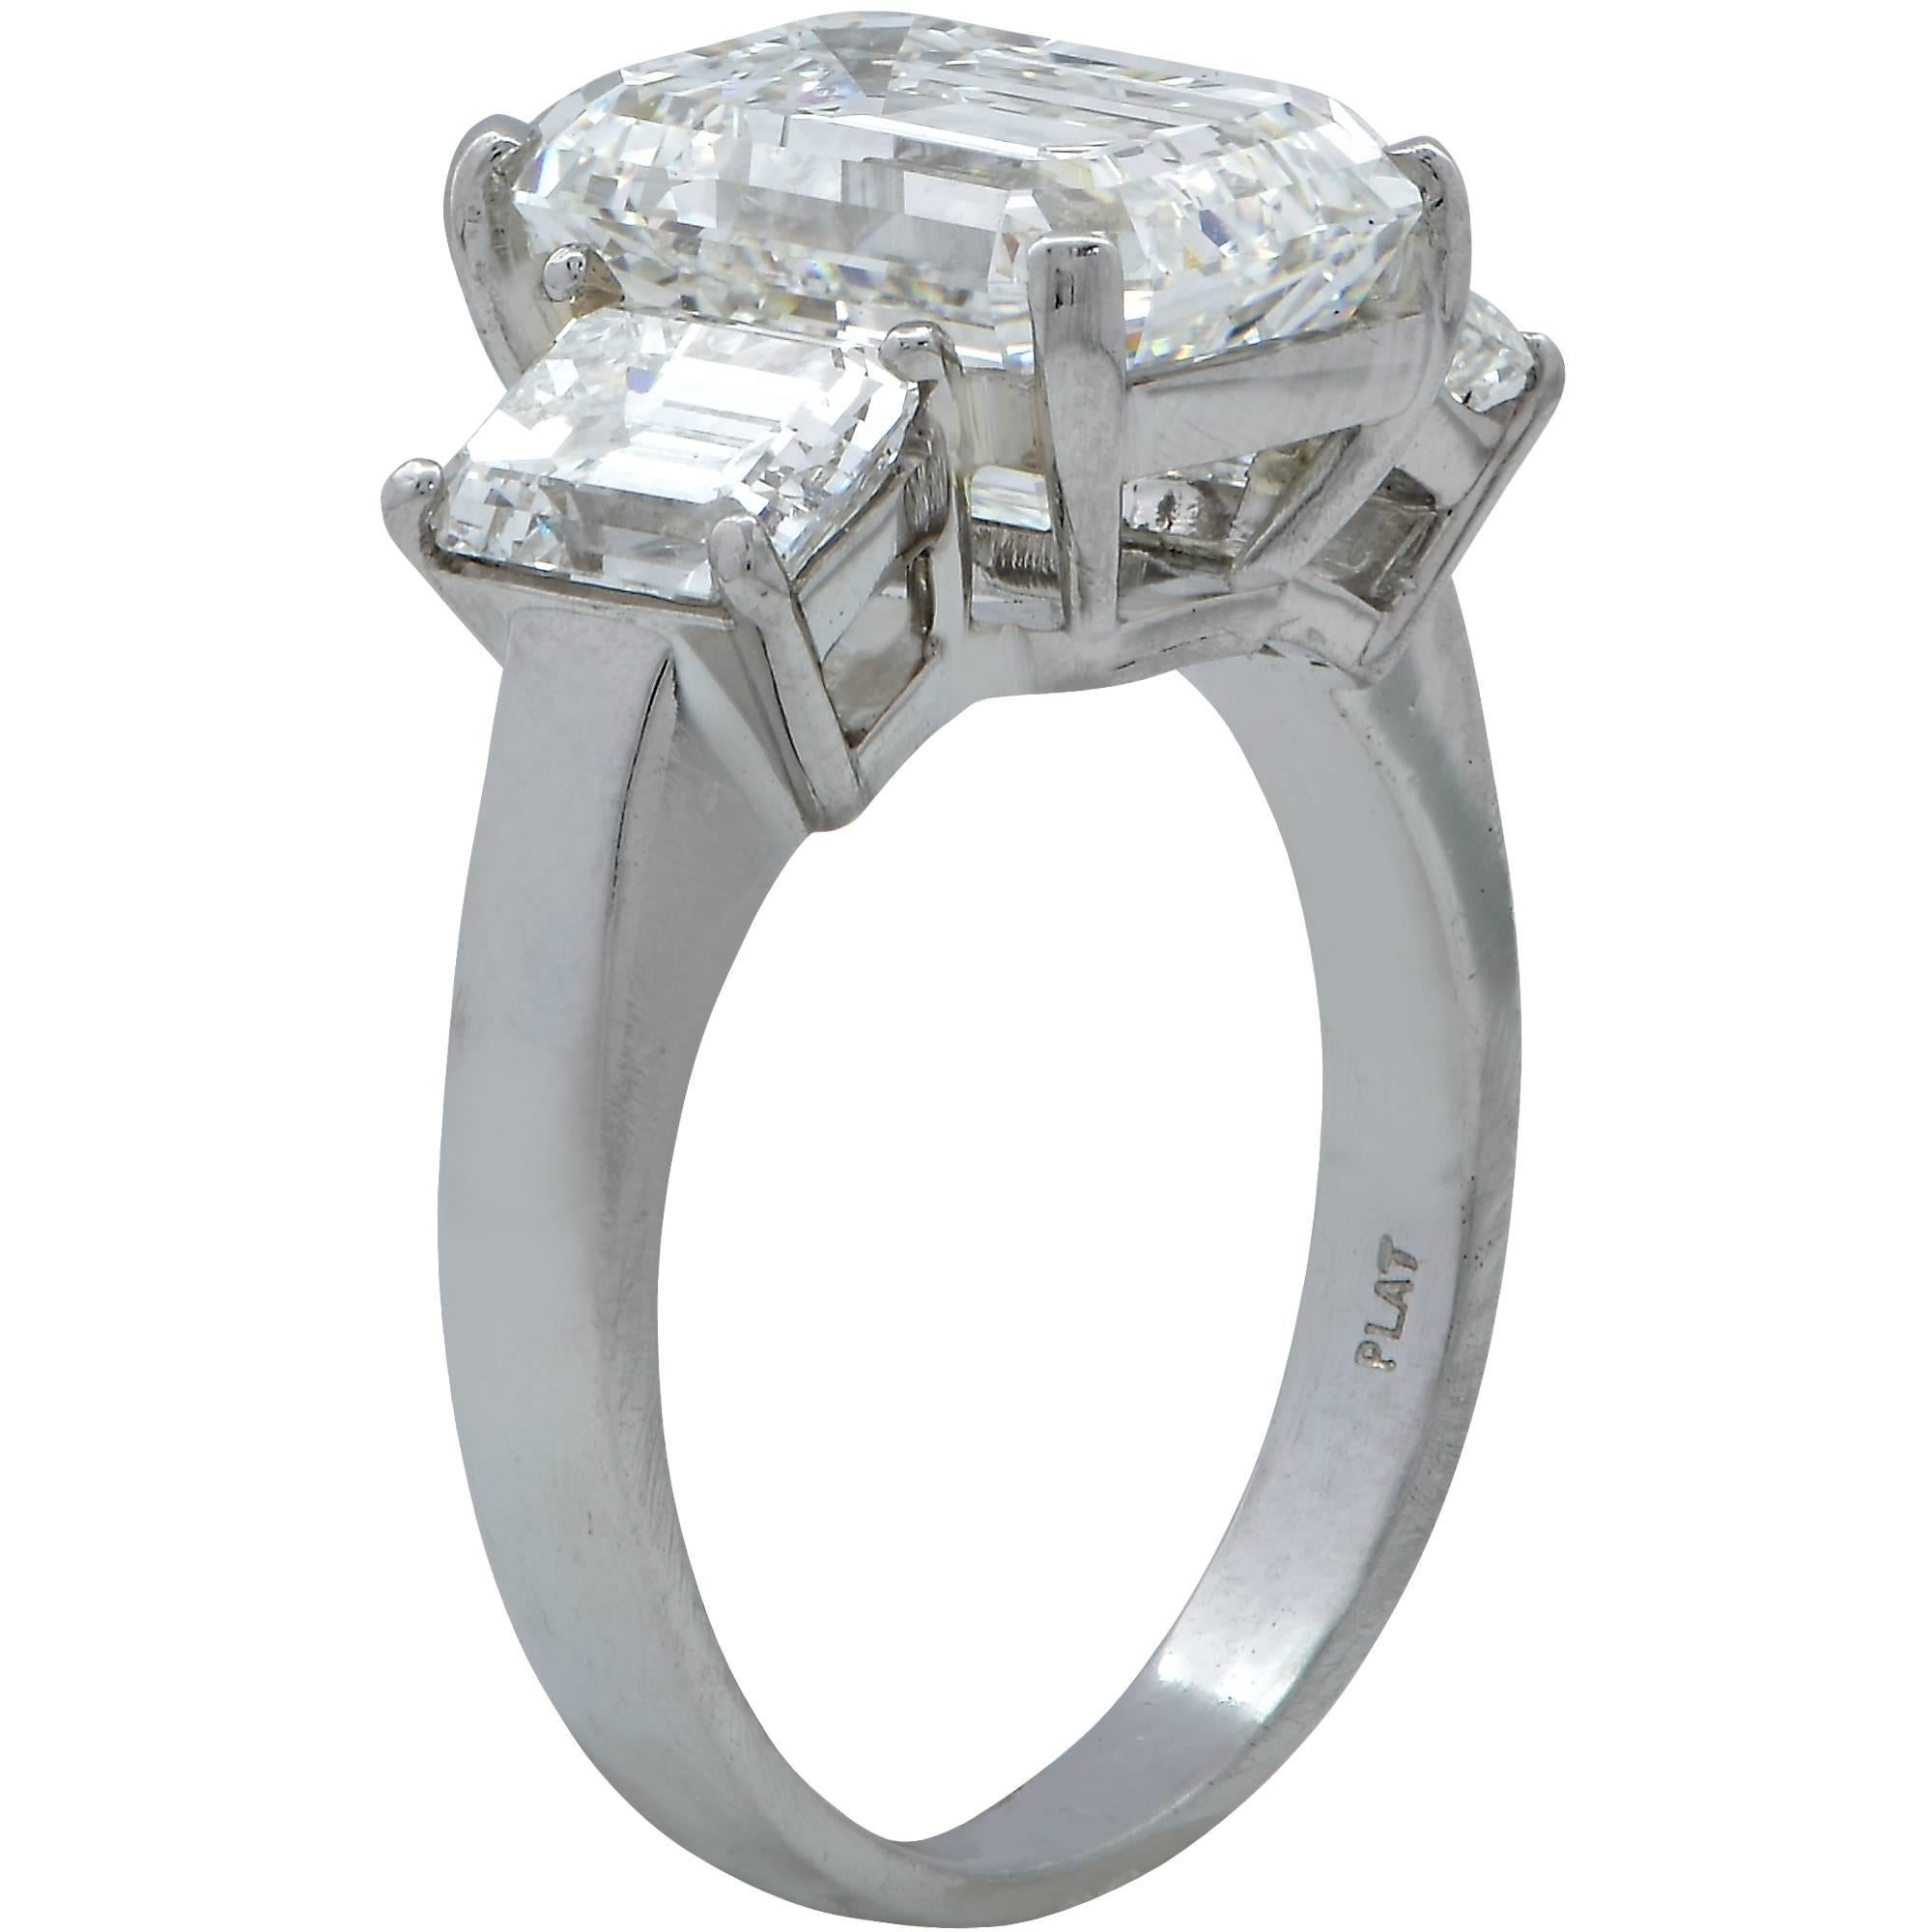 to of stone rings pin engagement model re design the open set millennium bar ring compliment